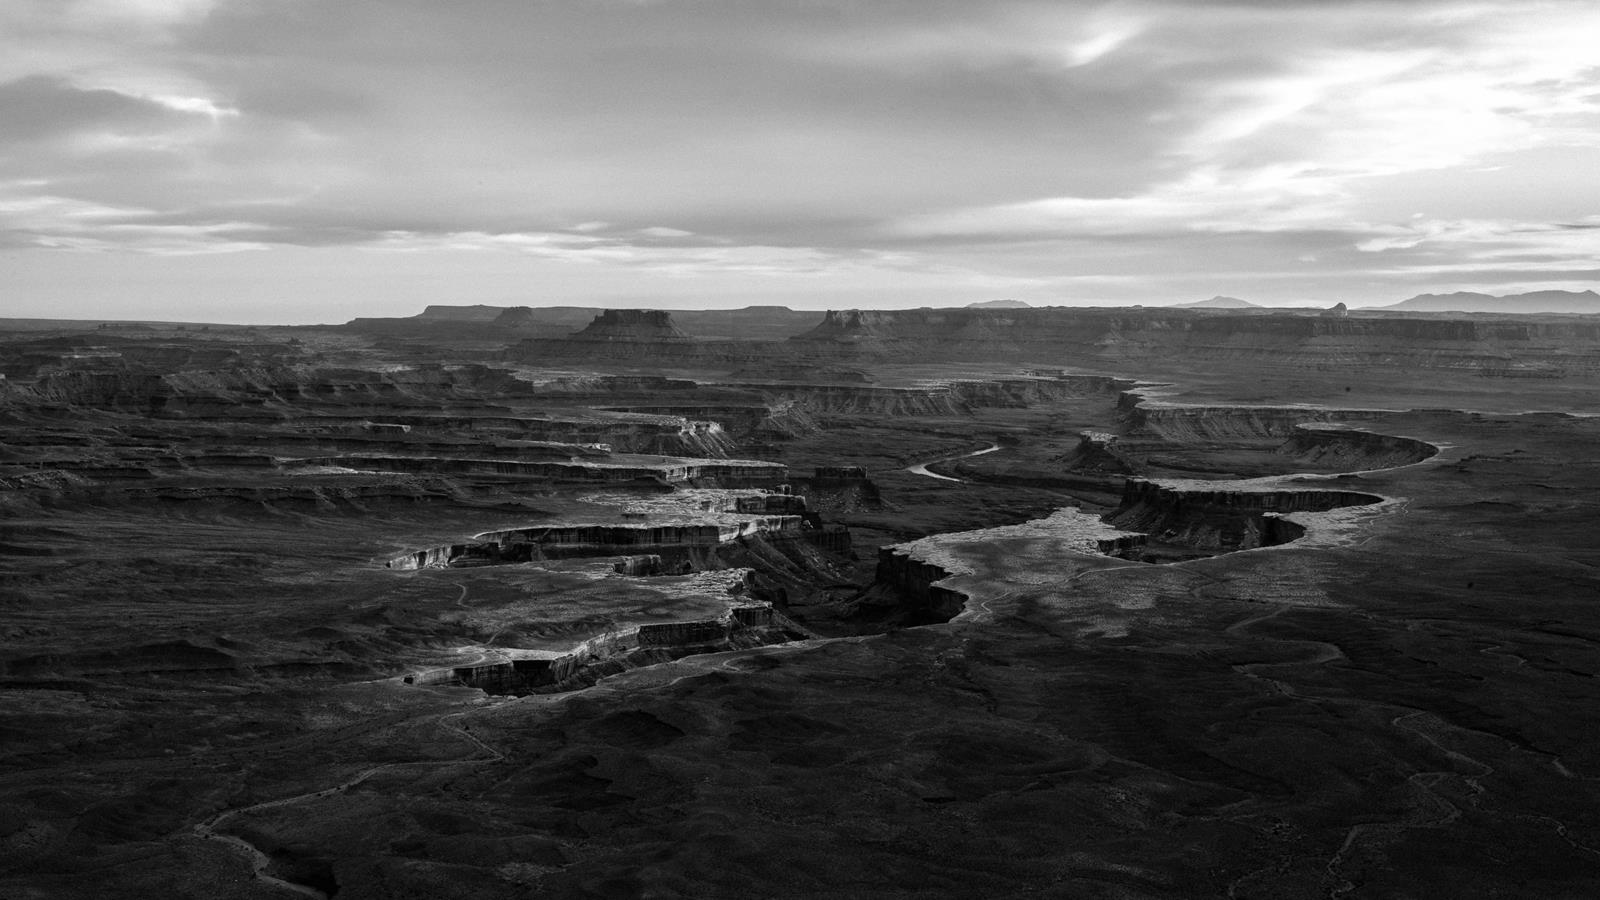 Black and white photography, Canyonlands, Canyonlands Utah, Canyonlands National Park, Canyonlands National Park camping, Canyonlands Needles,